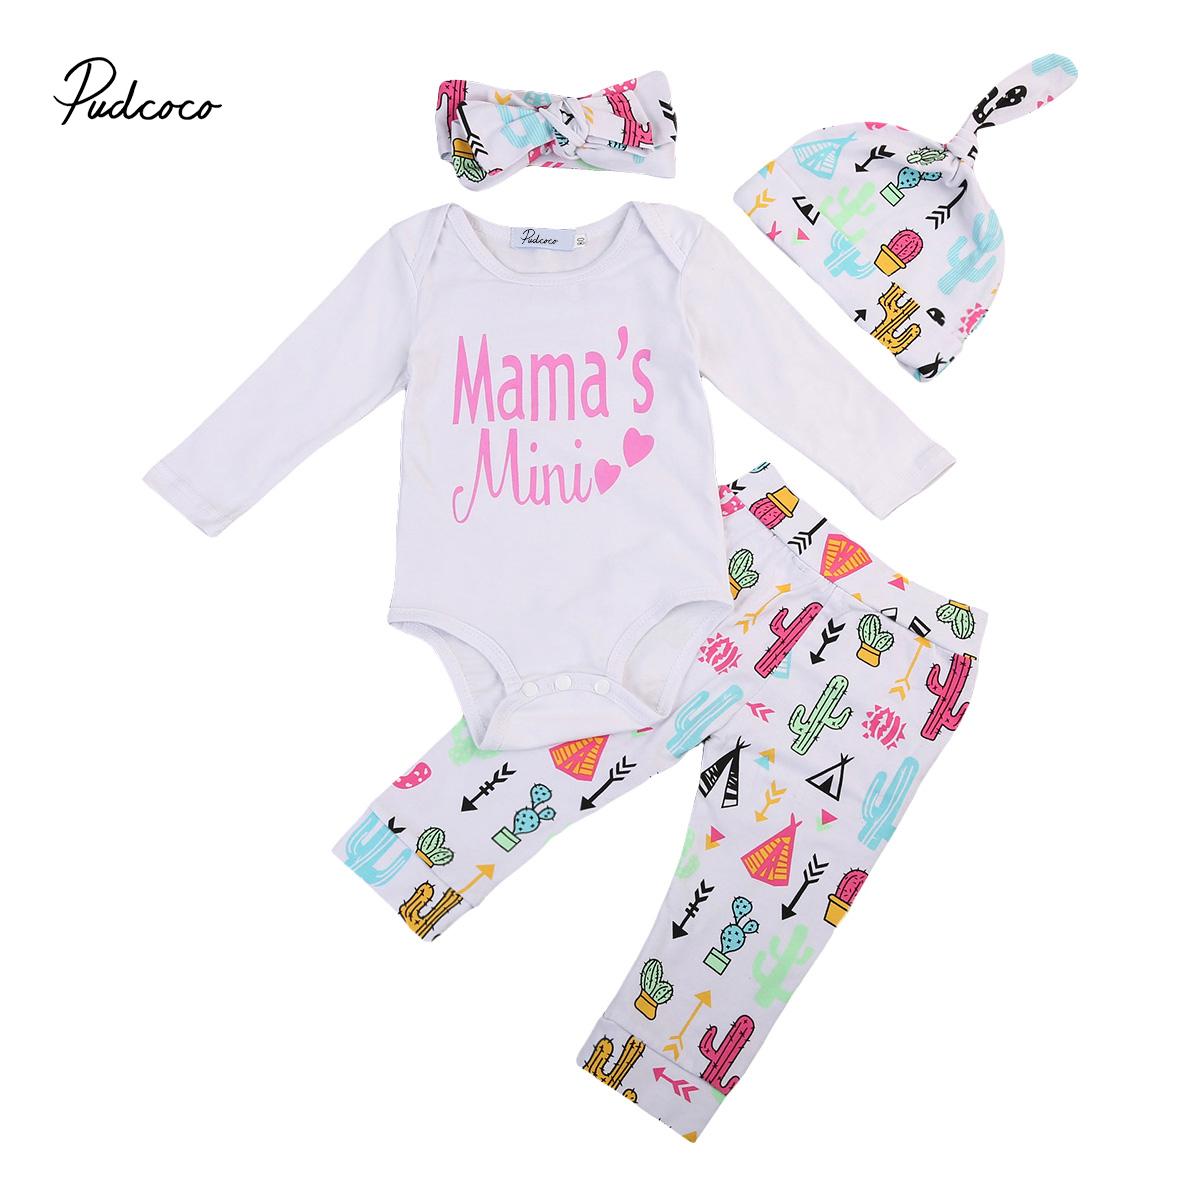 0-24M Newborn Toddler Baby Girls Winter Clothes Romper Jumpsuit Bodysuit+Pants Leggings Outfits Set 4pcs Cotton Infant Clothing 0 24m newborn infant baby boy girl clothes set romper bodysuit tops rainbow long pants hat 3pcs toddler winter fall outfits